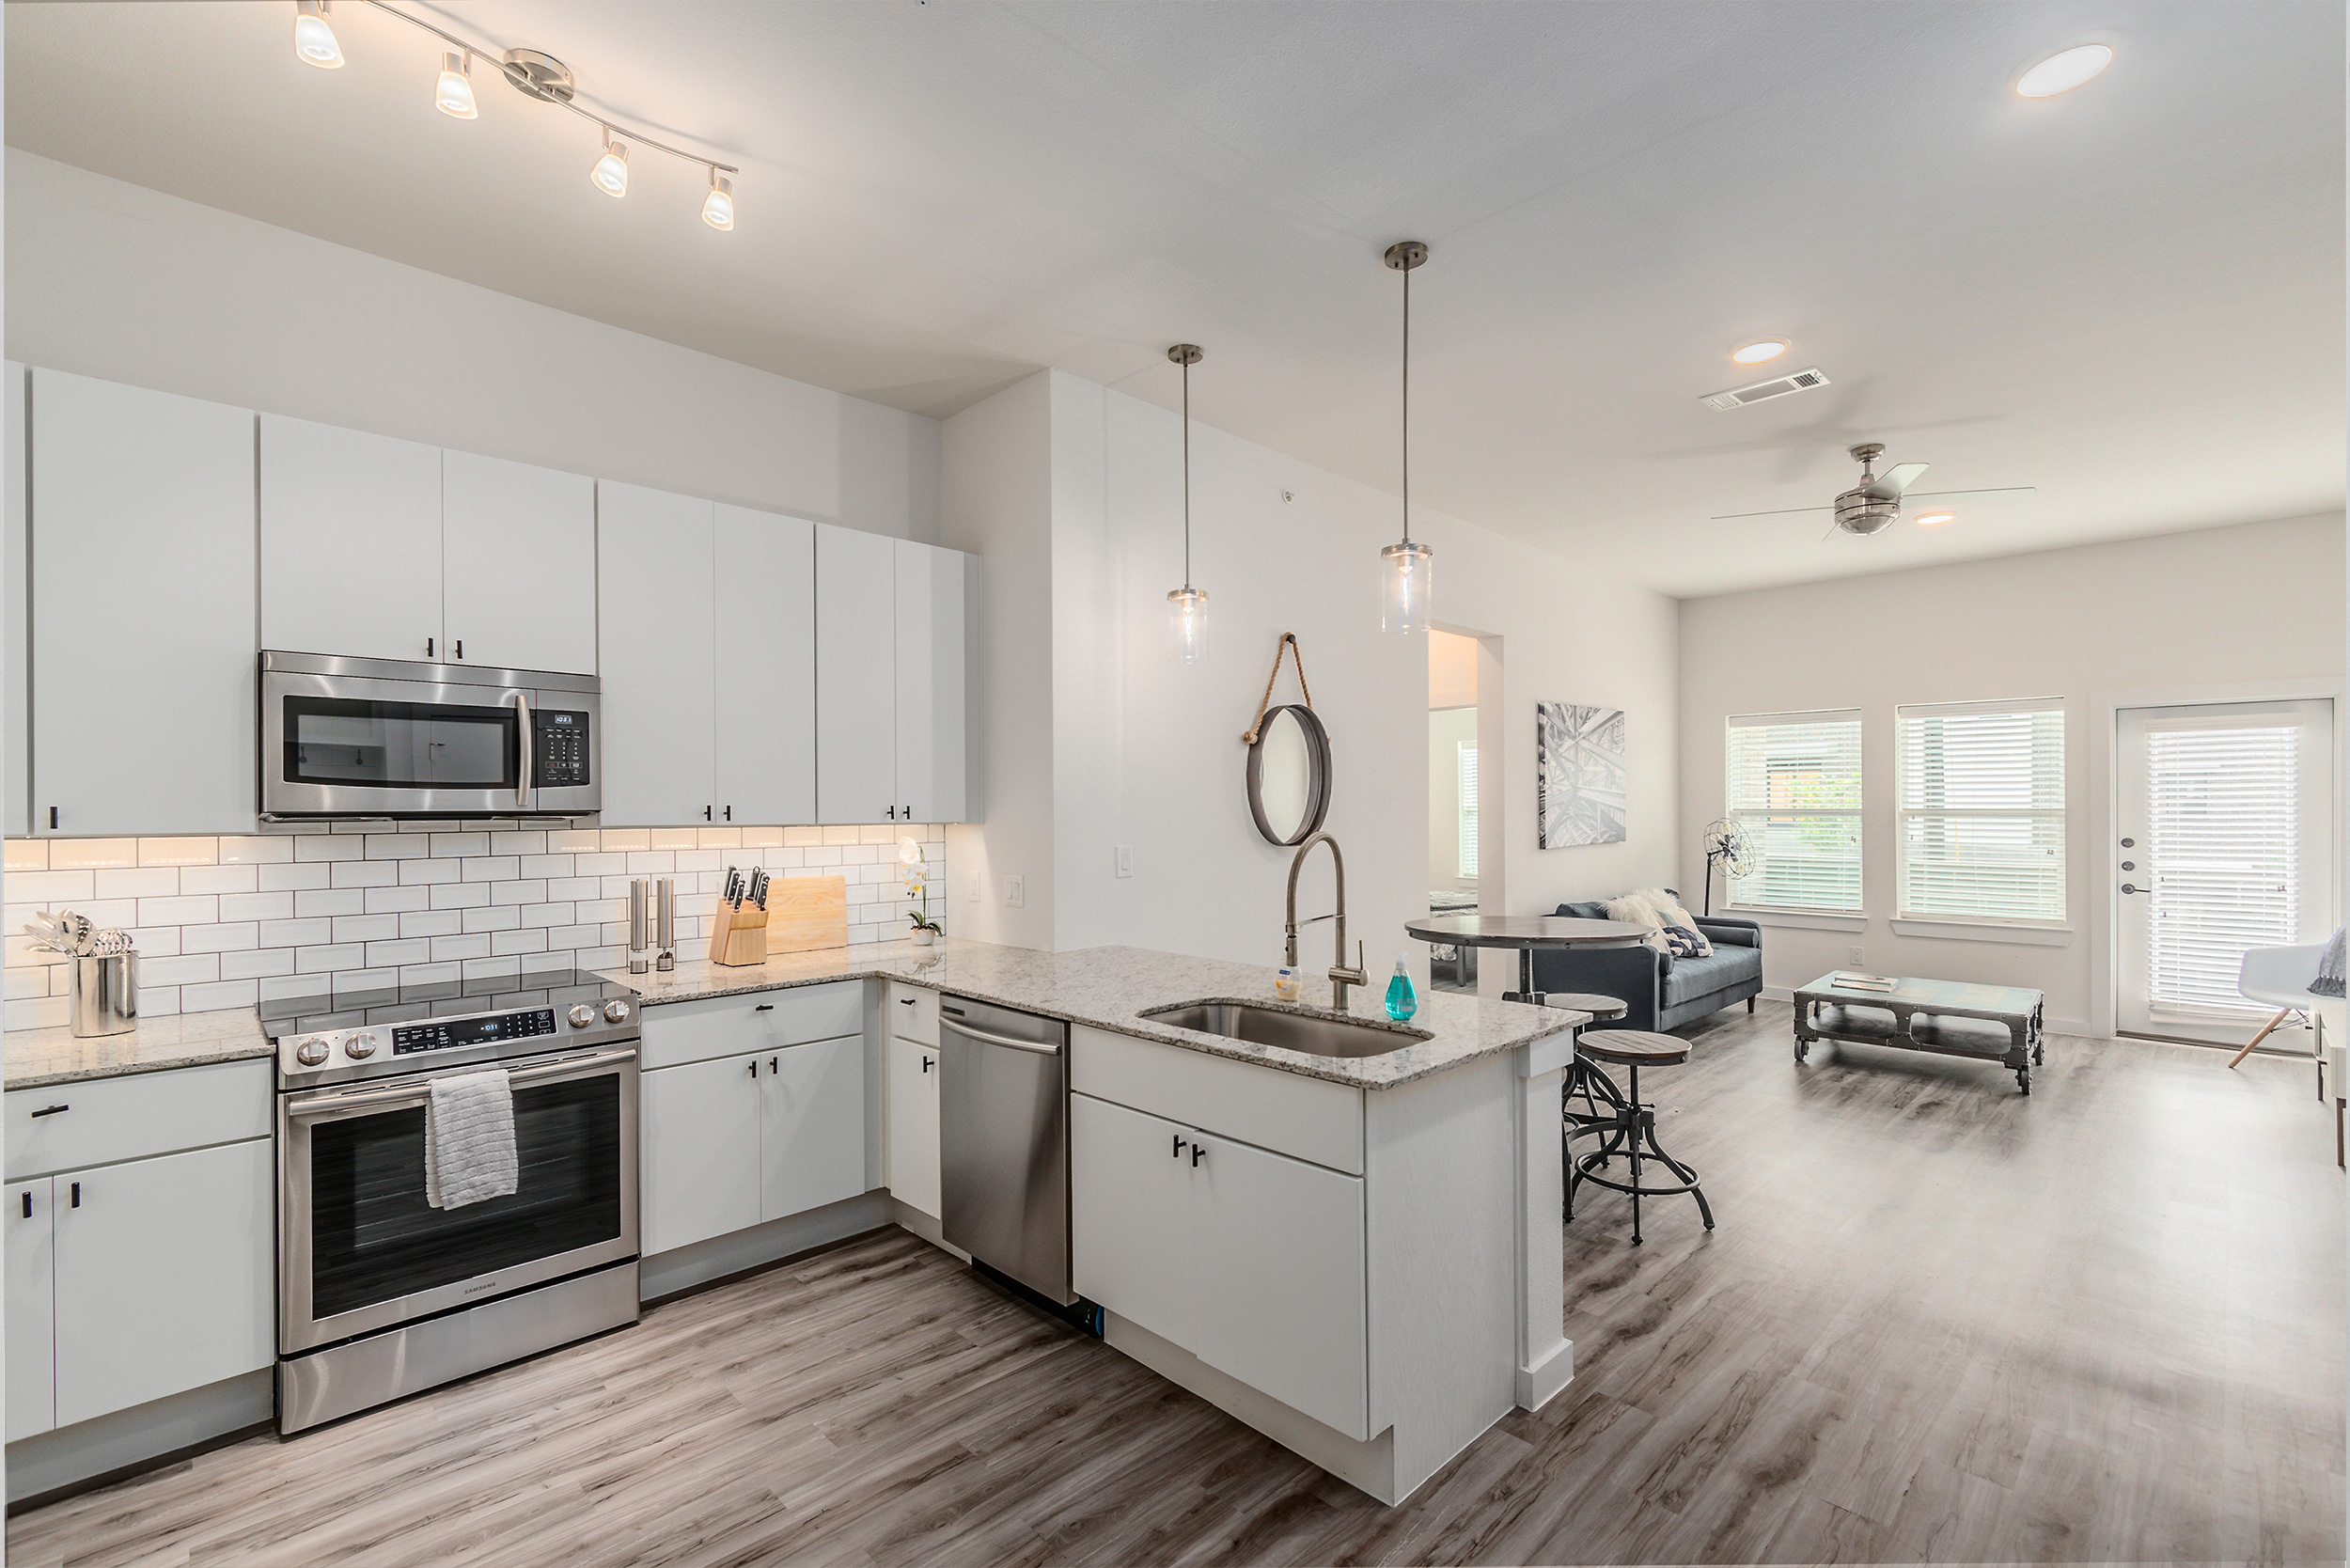 Live park 7 boutique apartments in fort worth 39 s west 7th - American gardens west 7th fort worth ...